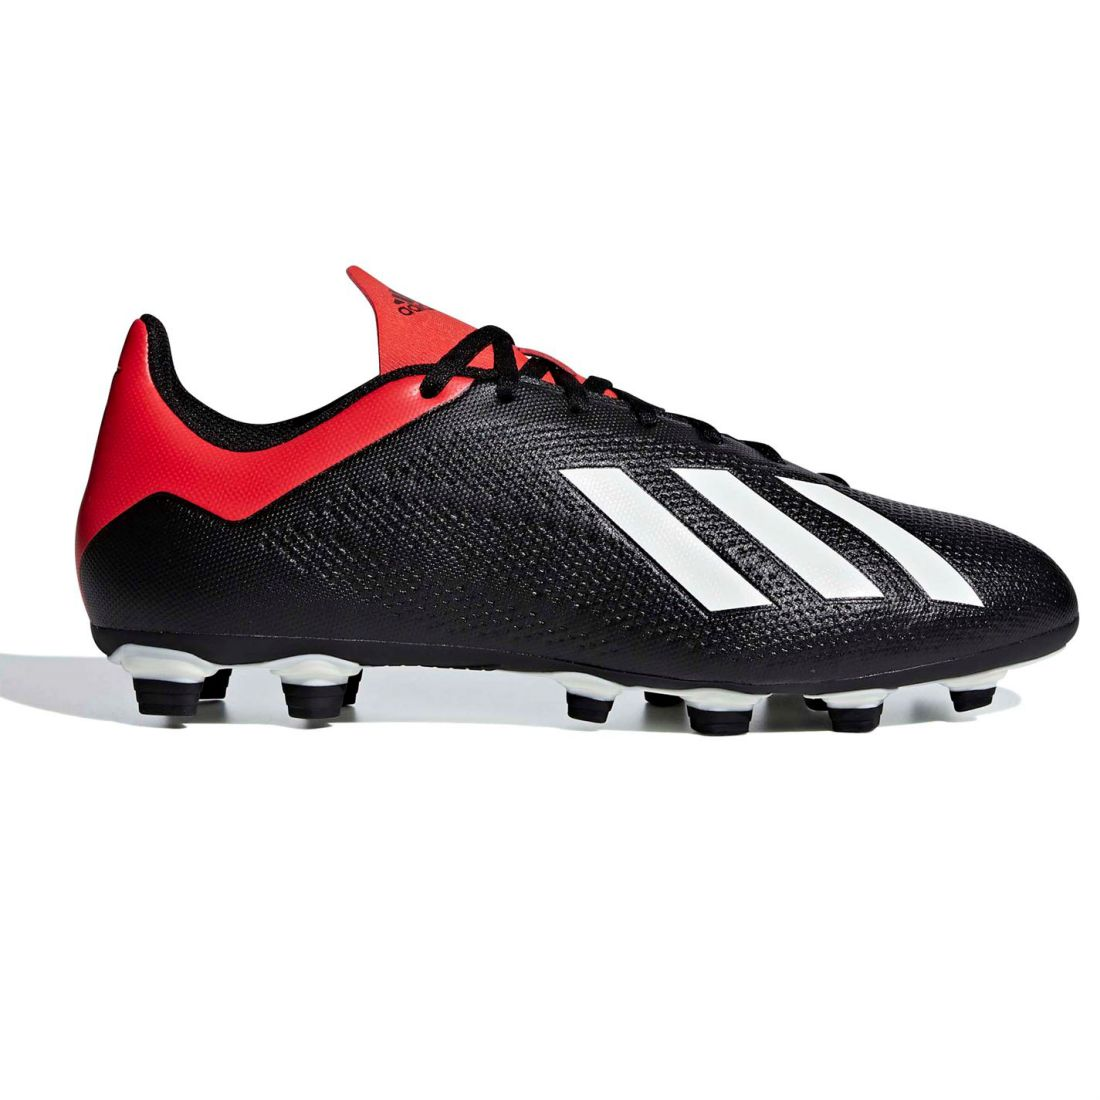 5e1a3bb66edd adidas Mens X 18.4 FG Football Boots Firm Ground Lace Up Studs